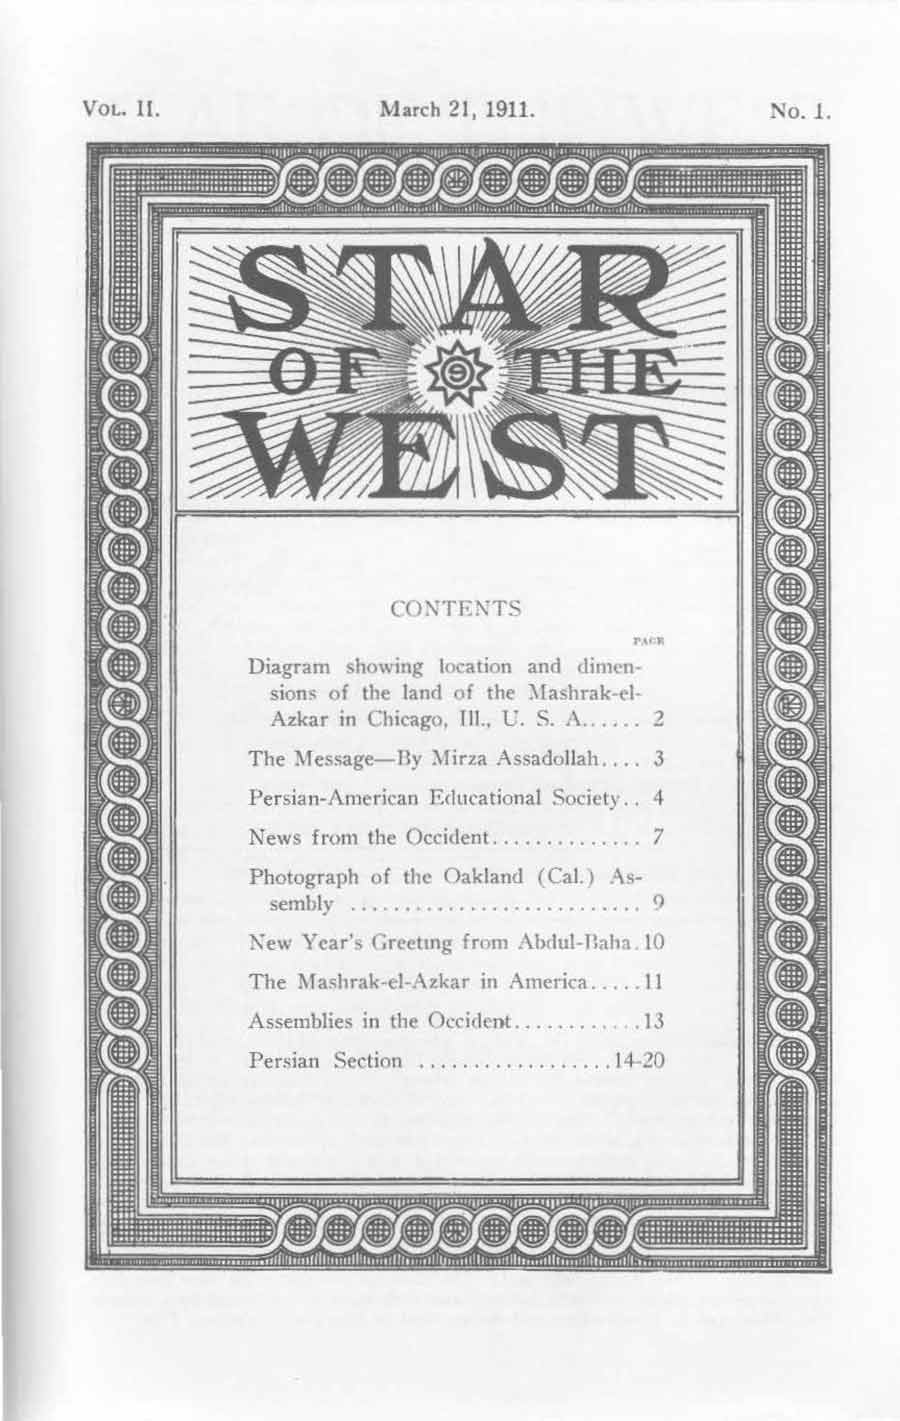 The cover of the second volume of Star of the West.